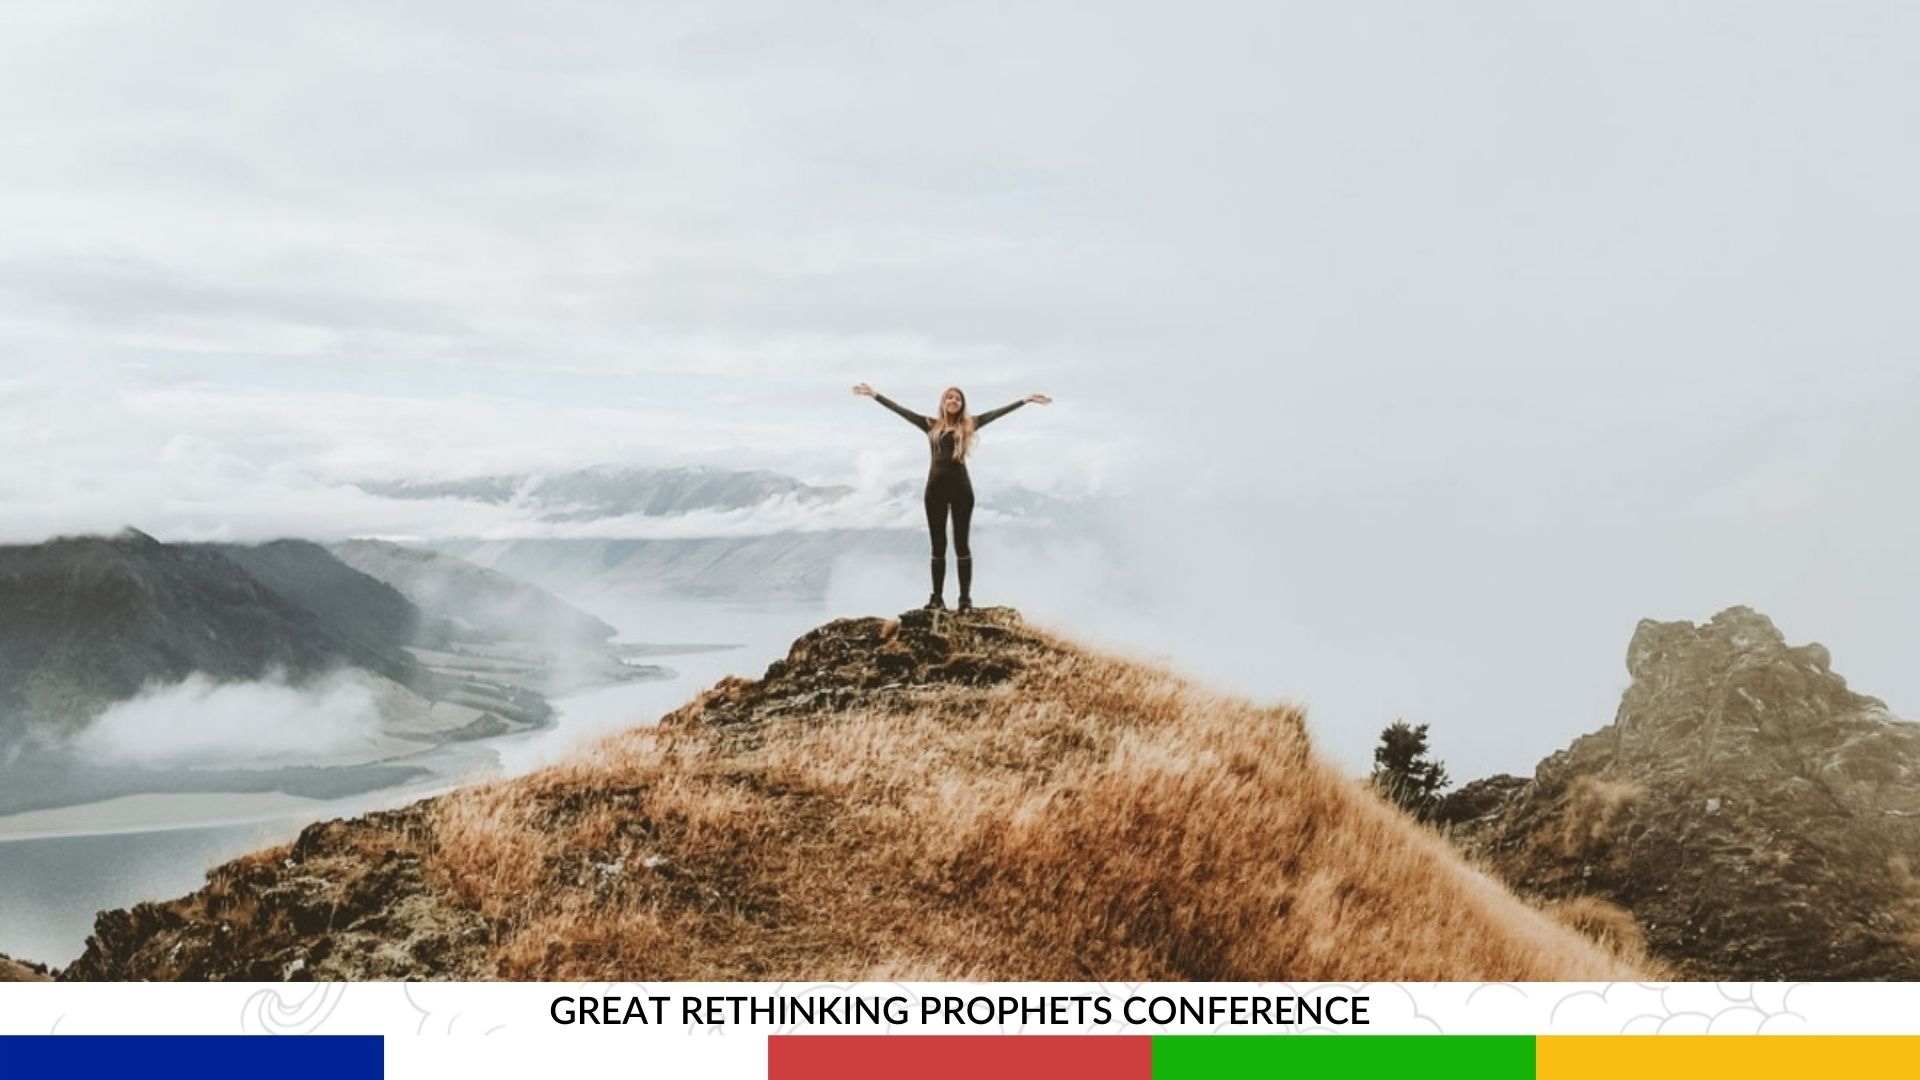 Great Rethinking Prophets Conference